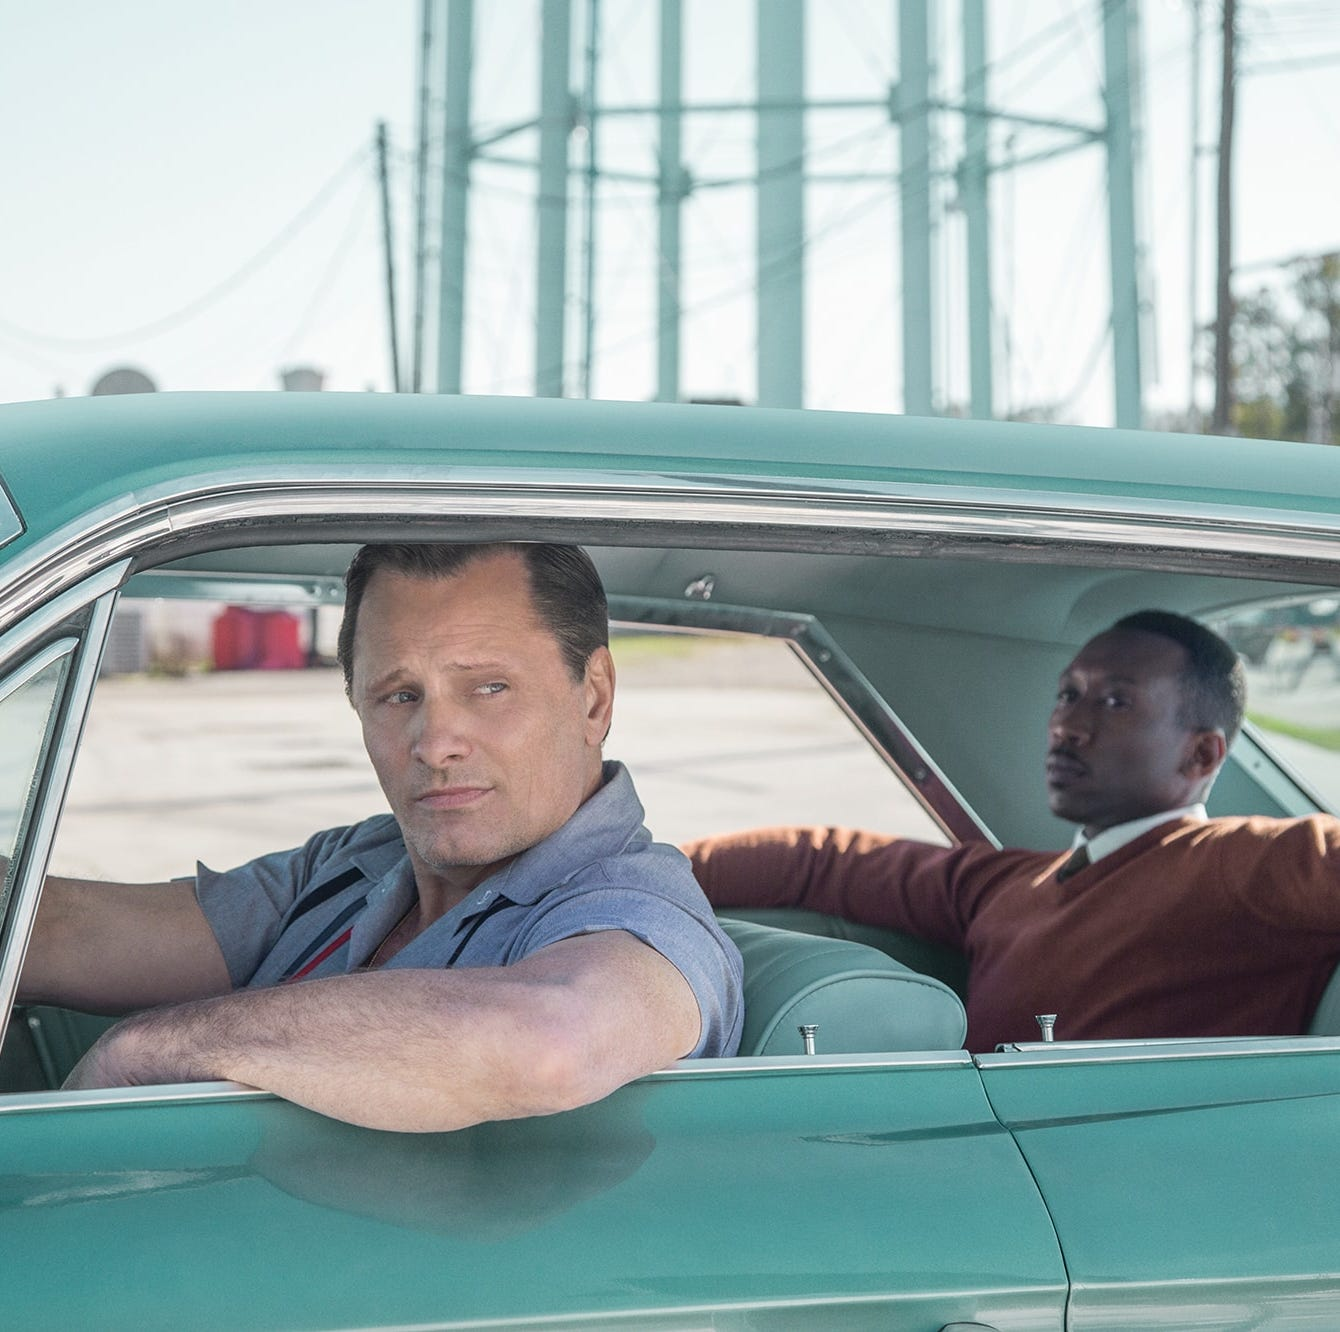 'Green Book' has won audience favorite awards at festivals across the country. Next up: Vanguard Award in Palm Springs